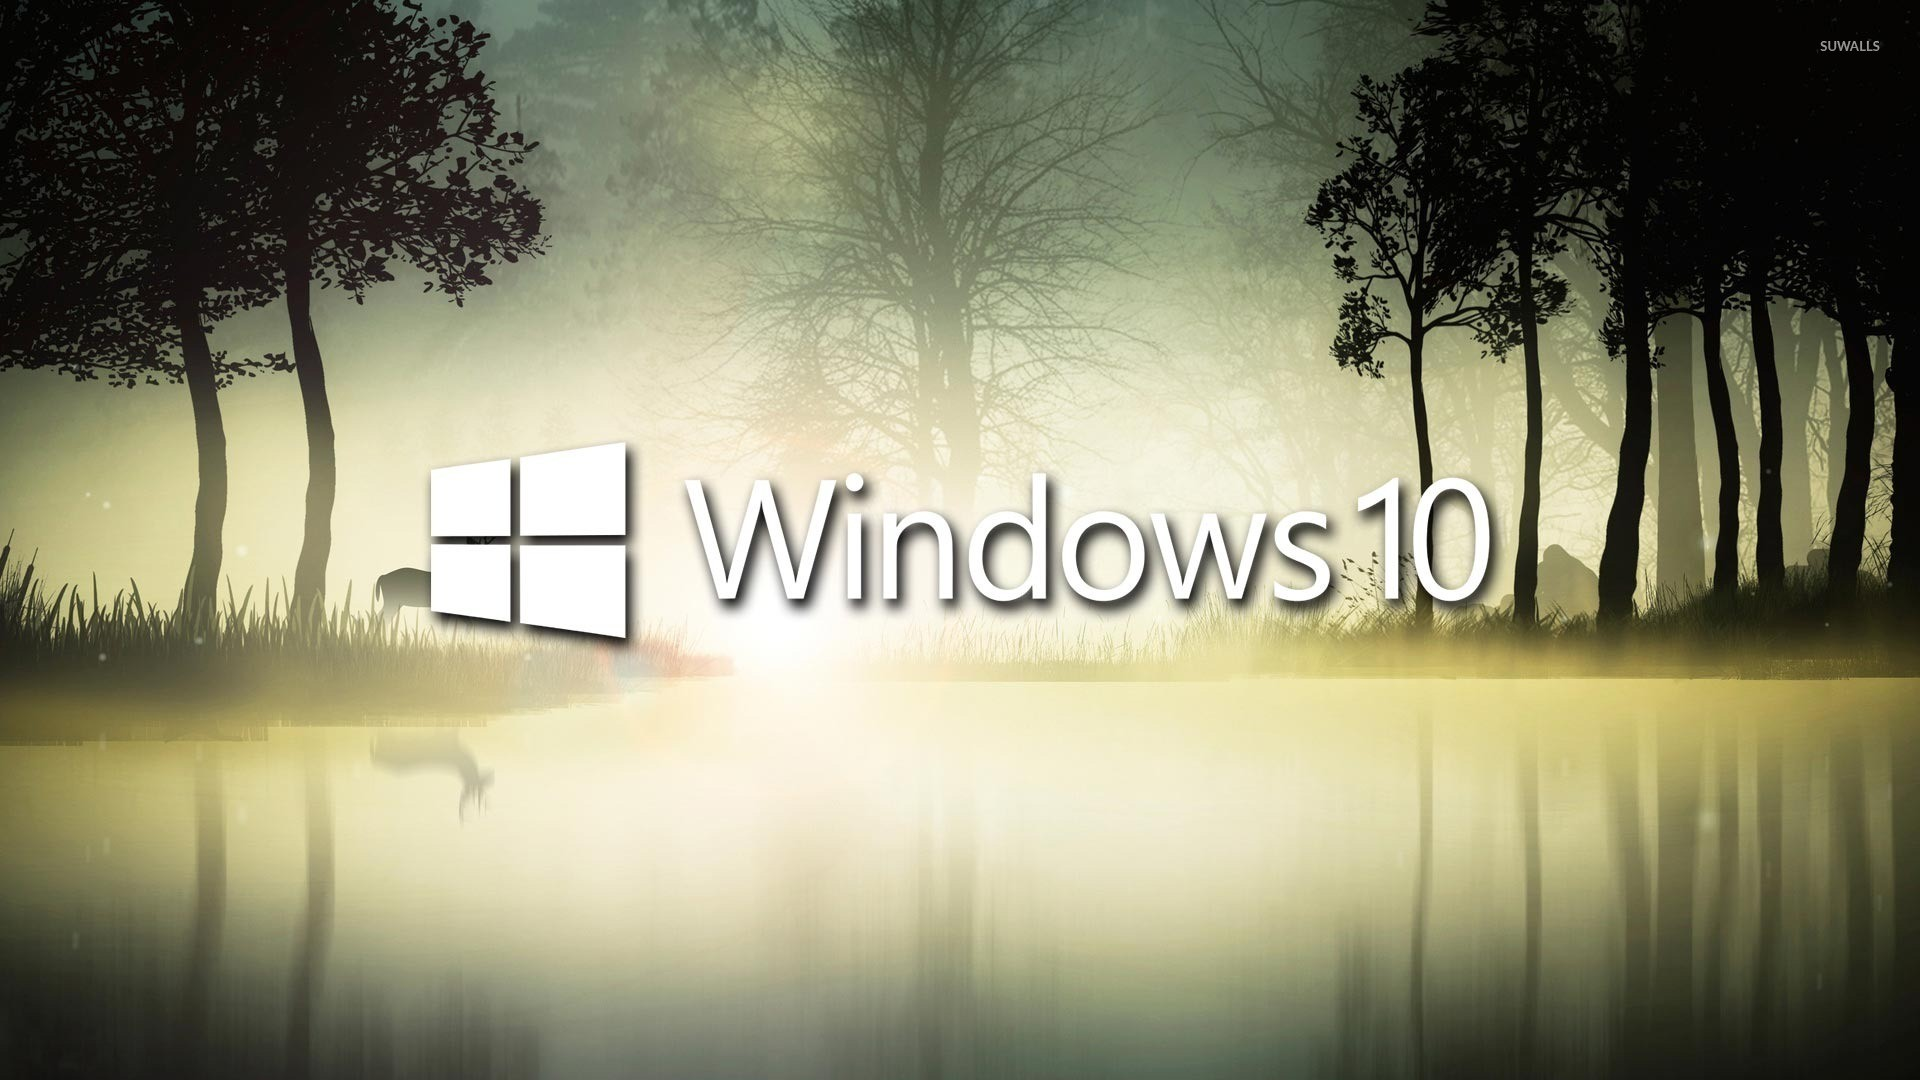 Windows 10 in the foggy forest wallpaper